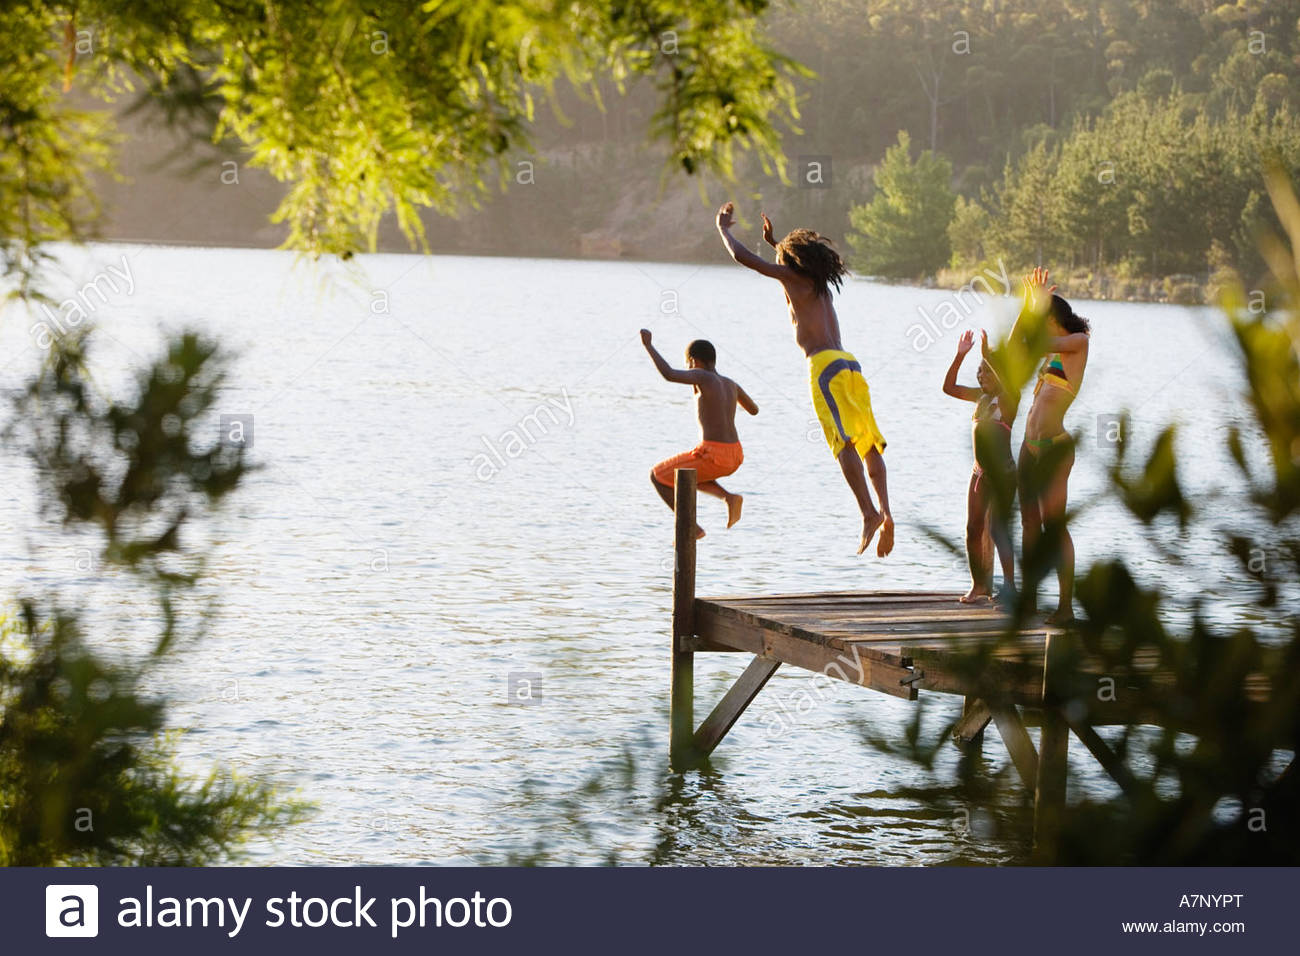 Father and son 8 10 in swimwear jumping off jetty into lake mother and daughter 7 9 cheering rear view - Stock Image